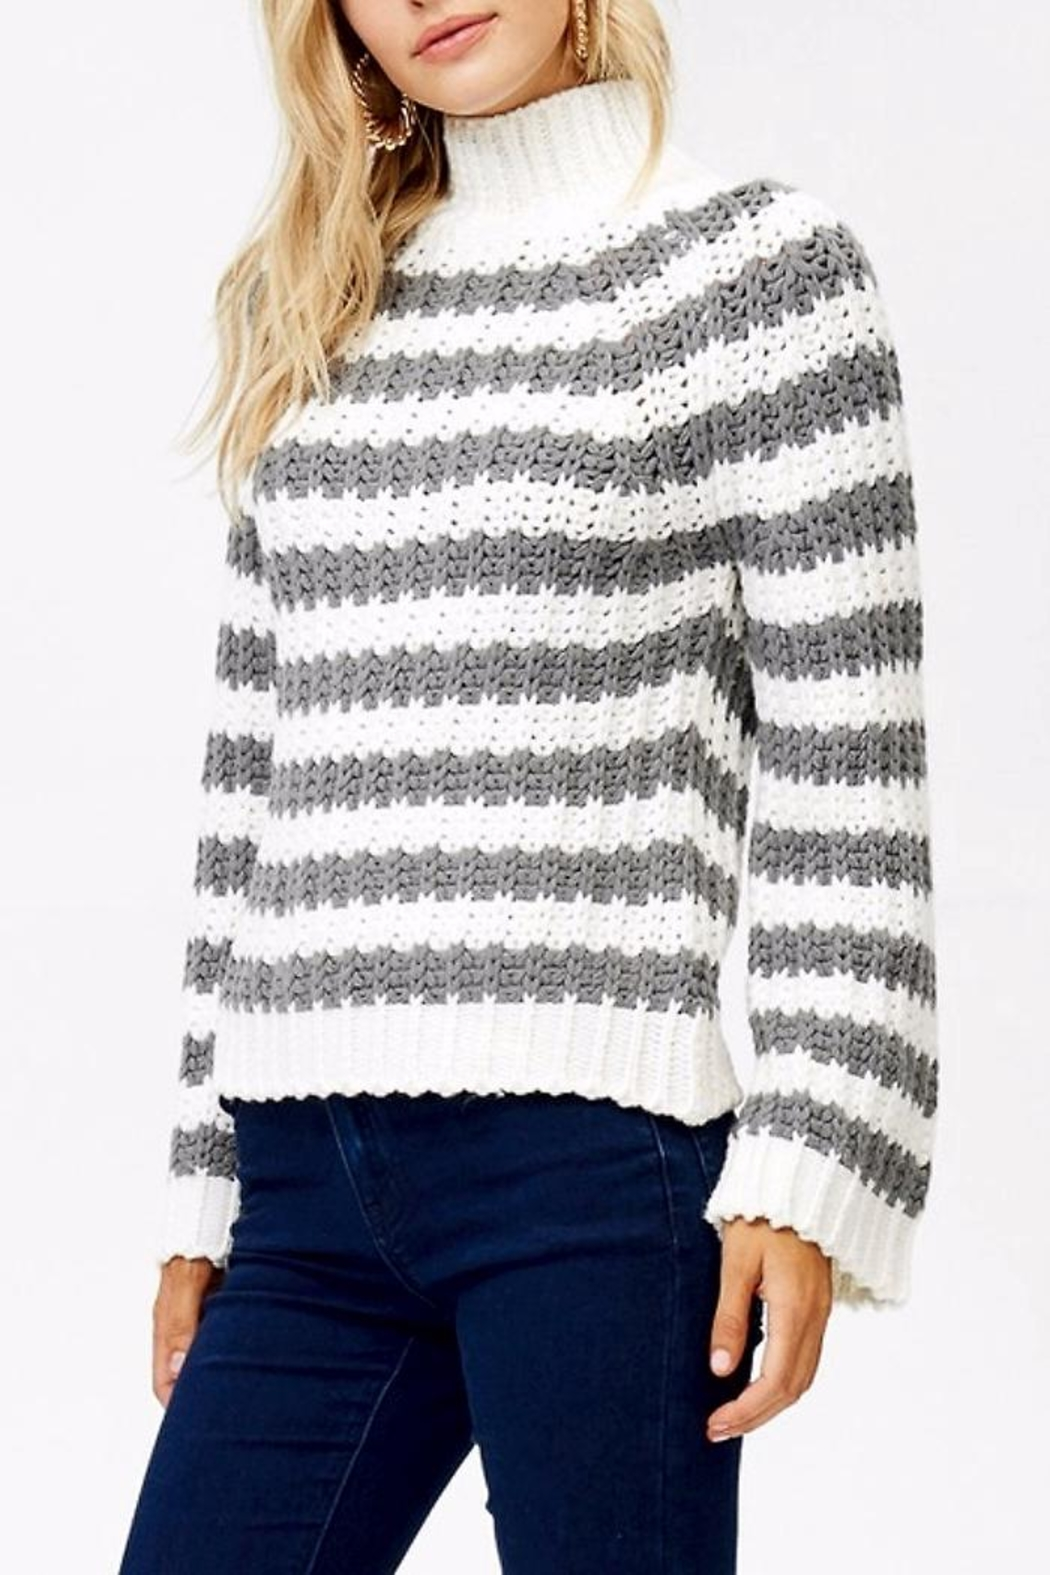 People Outfitter Brooke's Sweater - Main Image